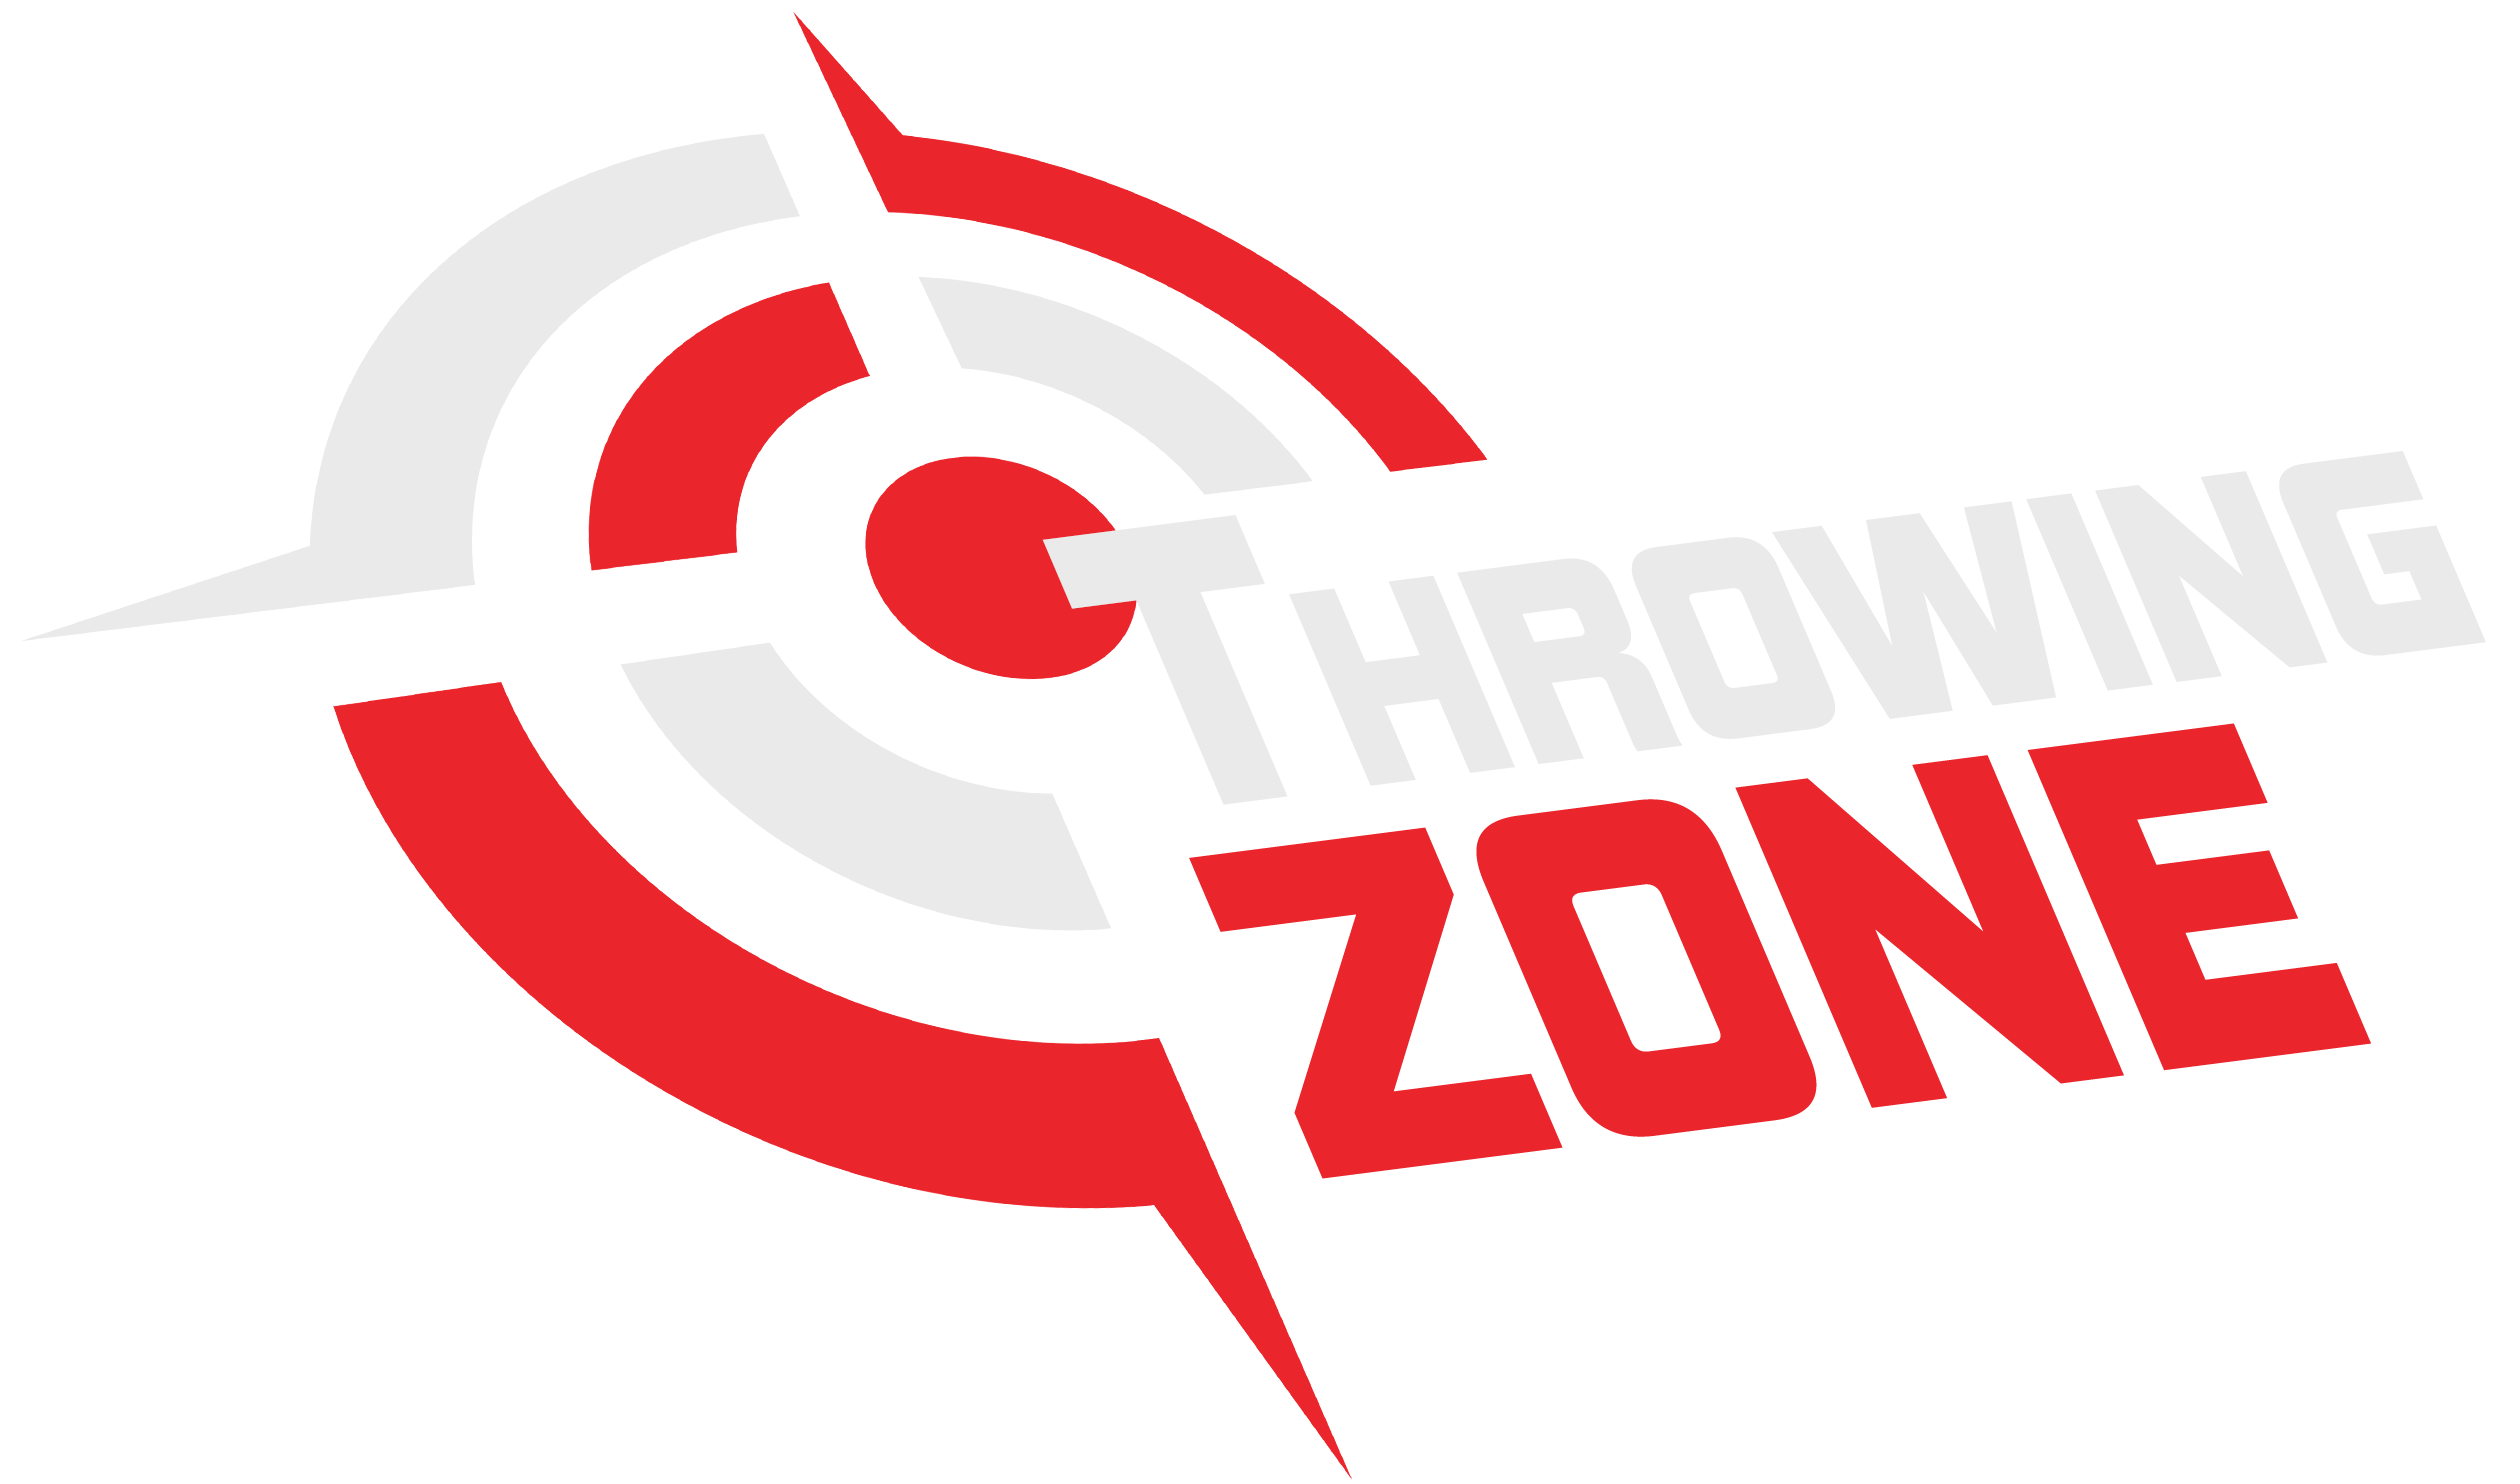 Throwing Zone